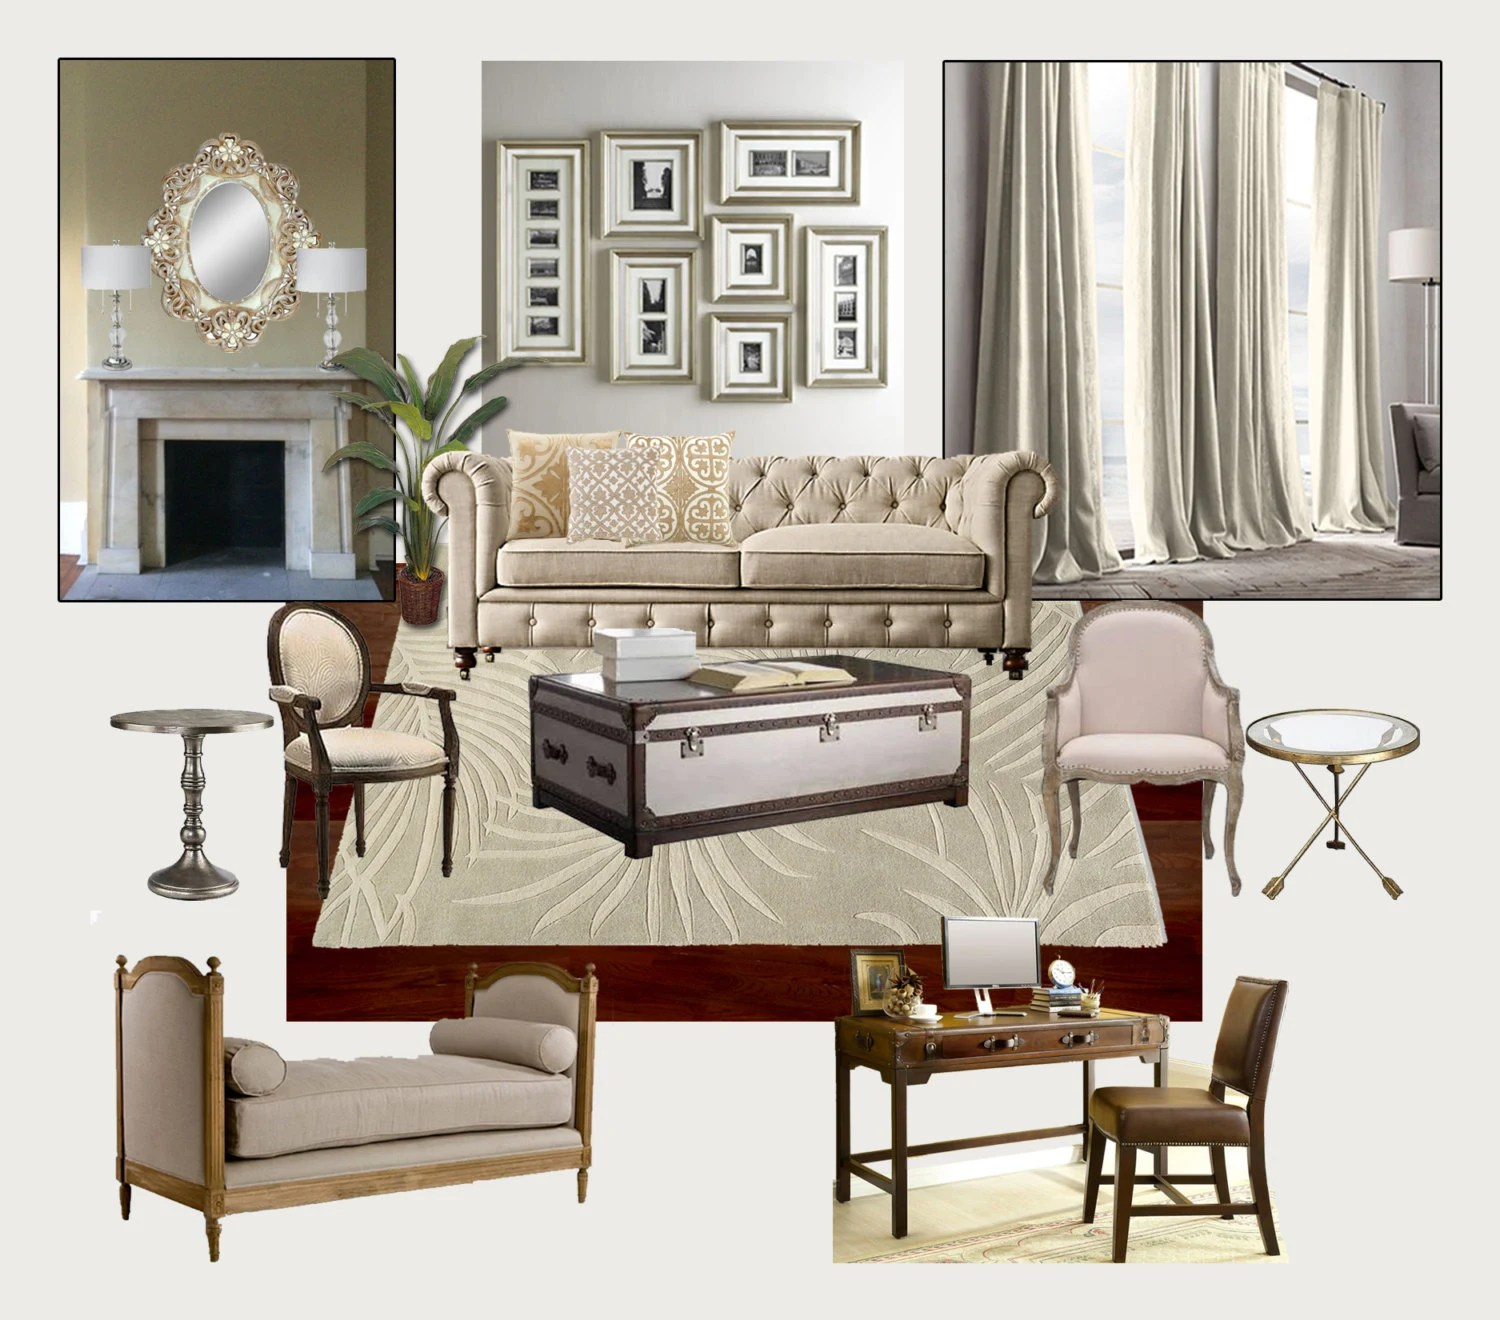 old world living room design interior for rooms in india online moodboard etsy image 0